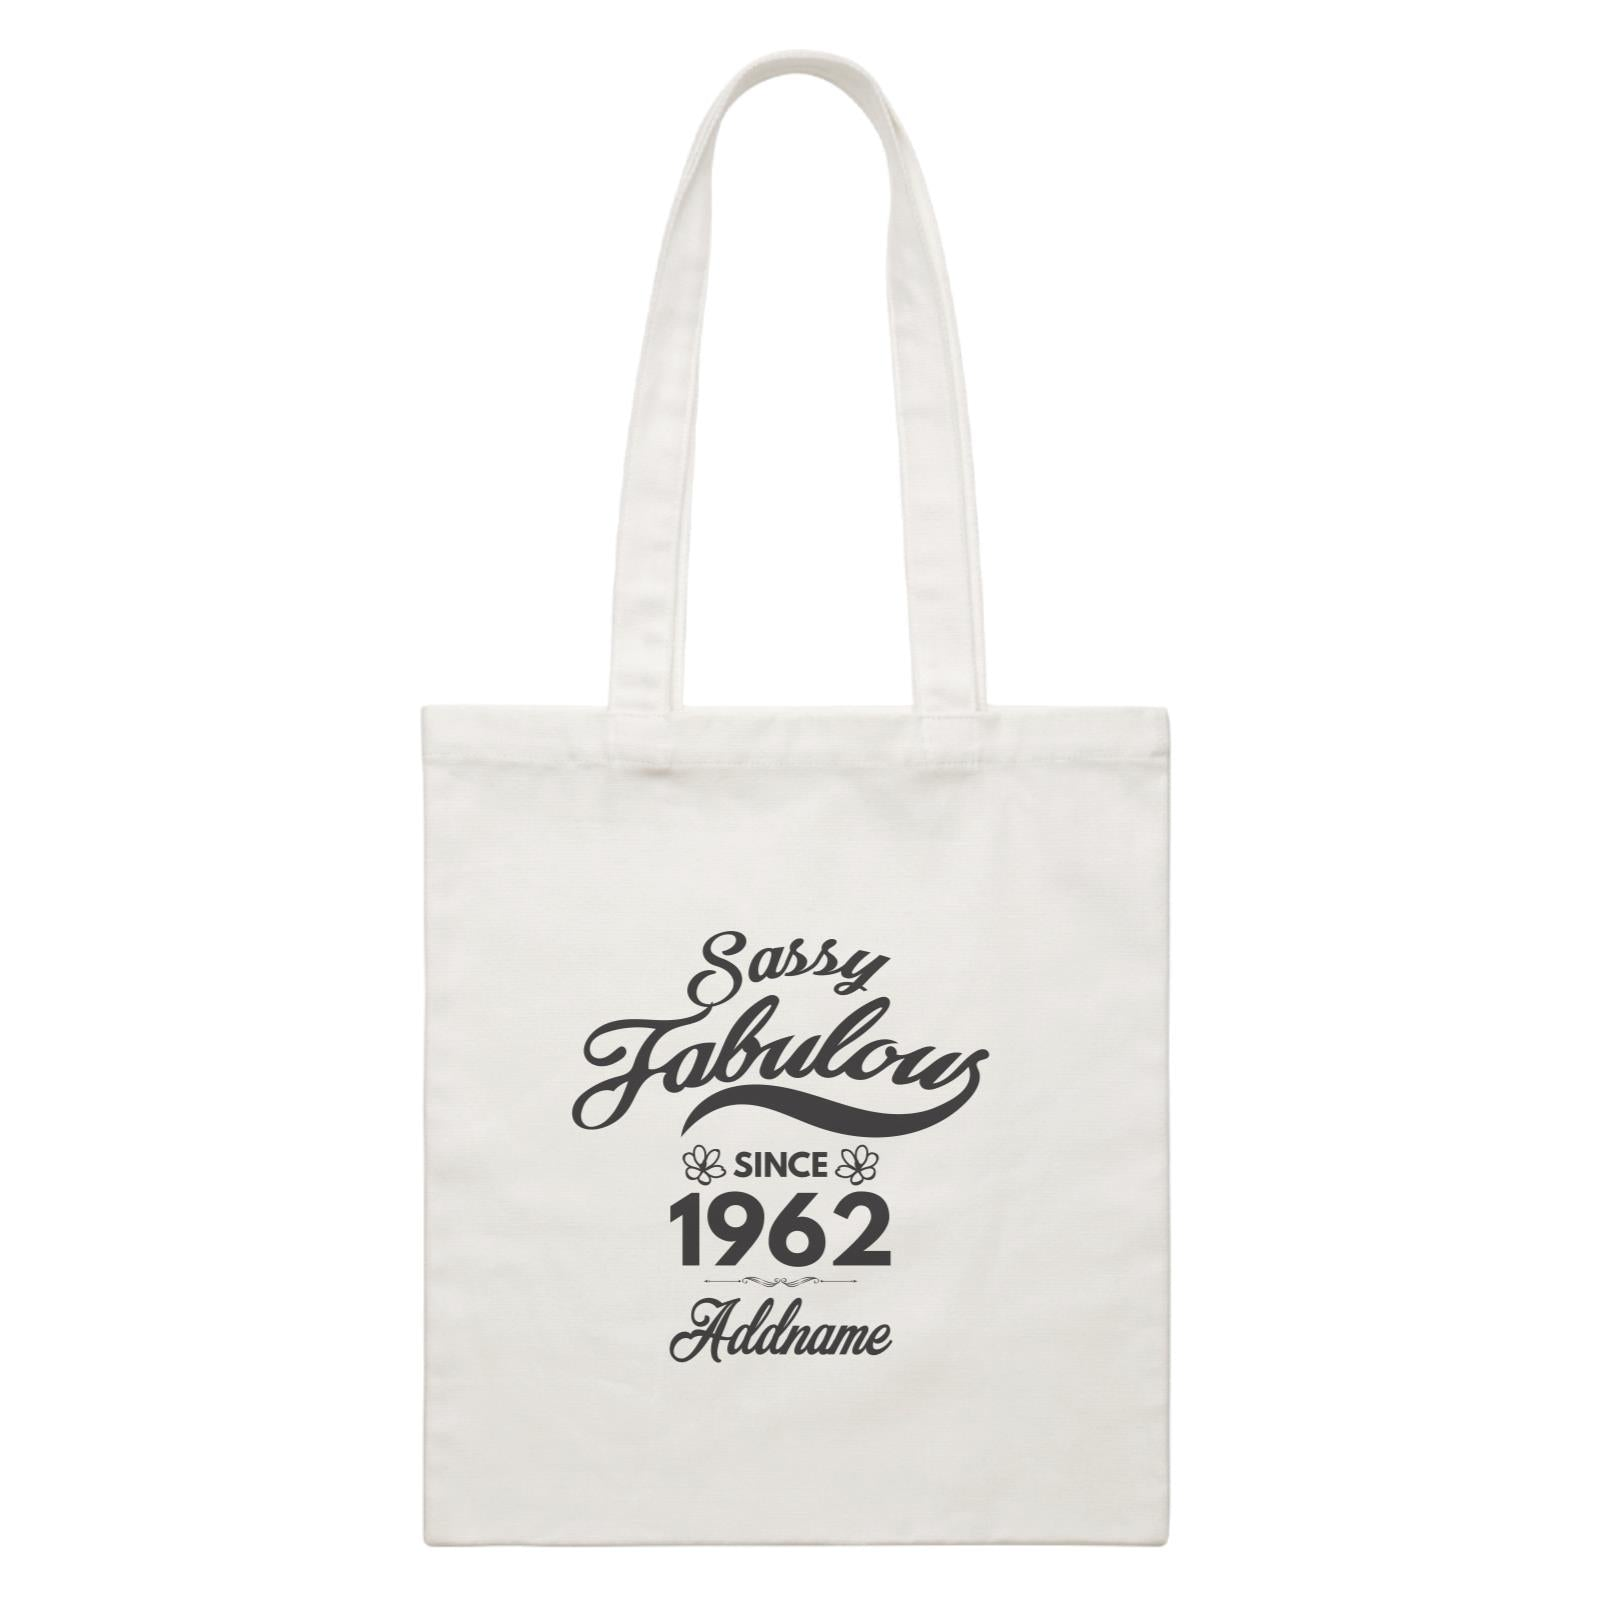 Personalize It Birthyear Sassy Fabulous Since with Addname and Add Year White White Canvas Bag